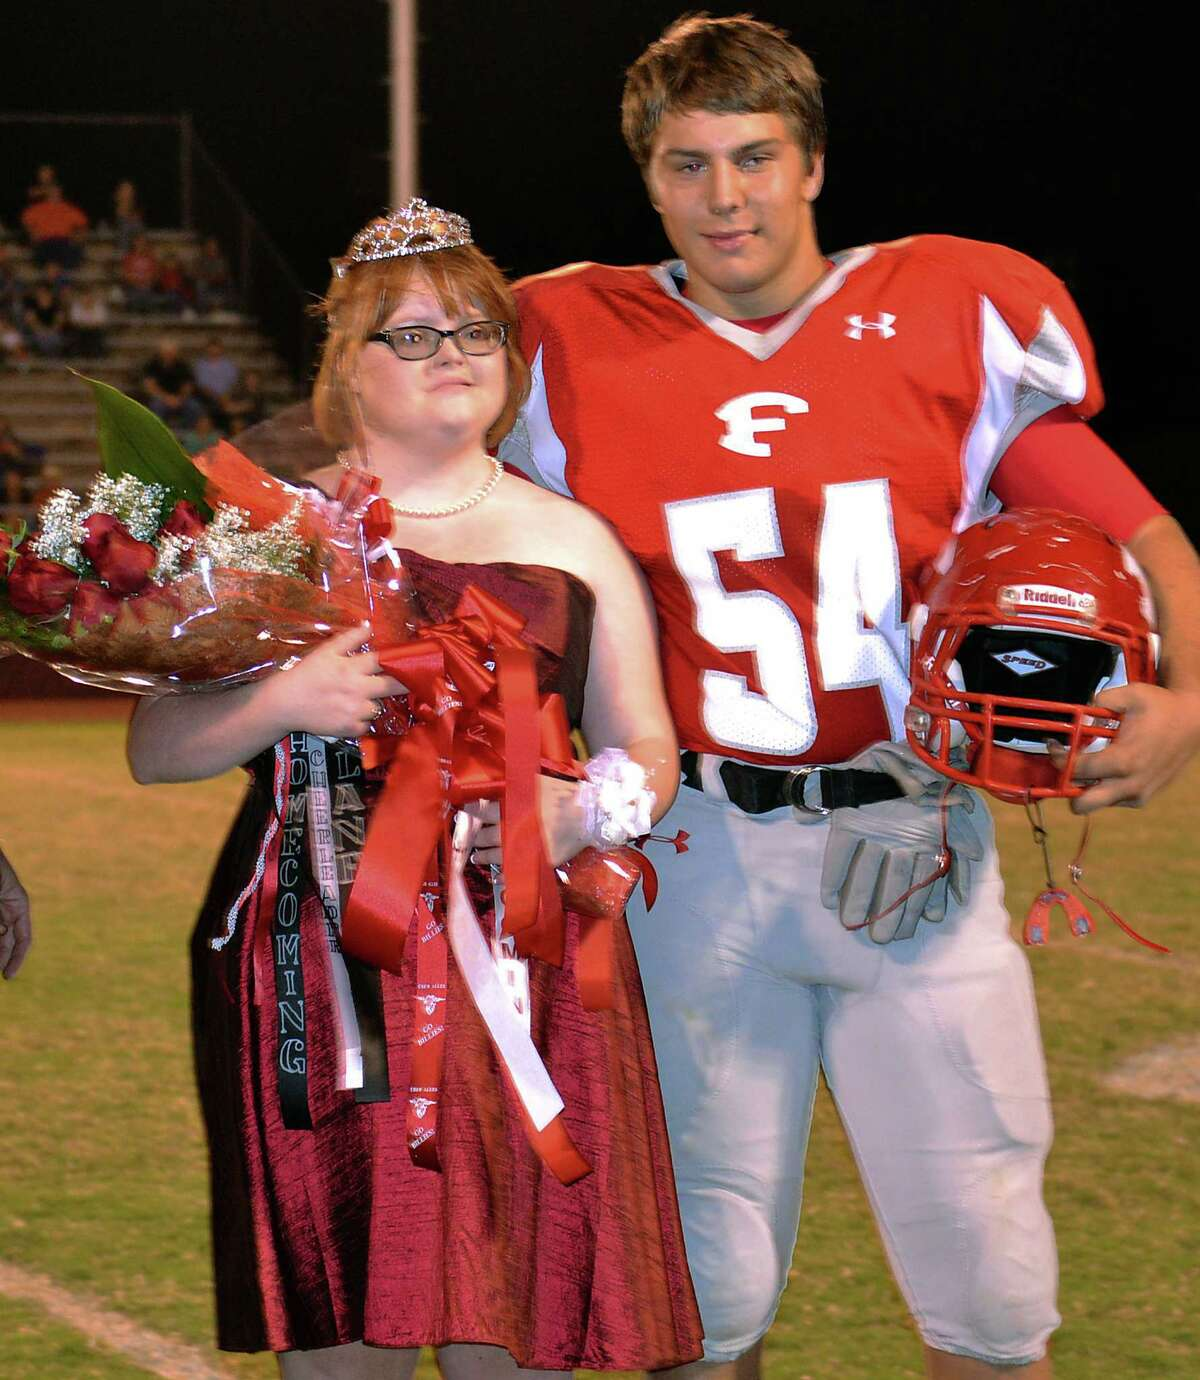 Libby Klein, left, stands with her escort Lane Williams after being crowned Homecoming Queen of Fredericksburg High School Saturday night.